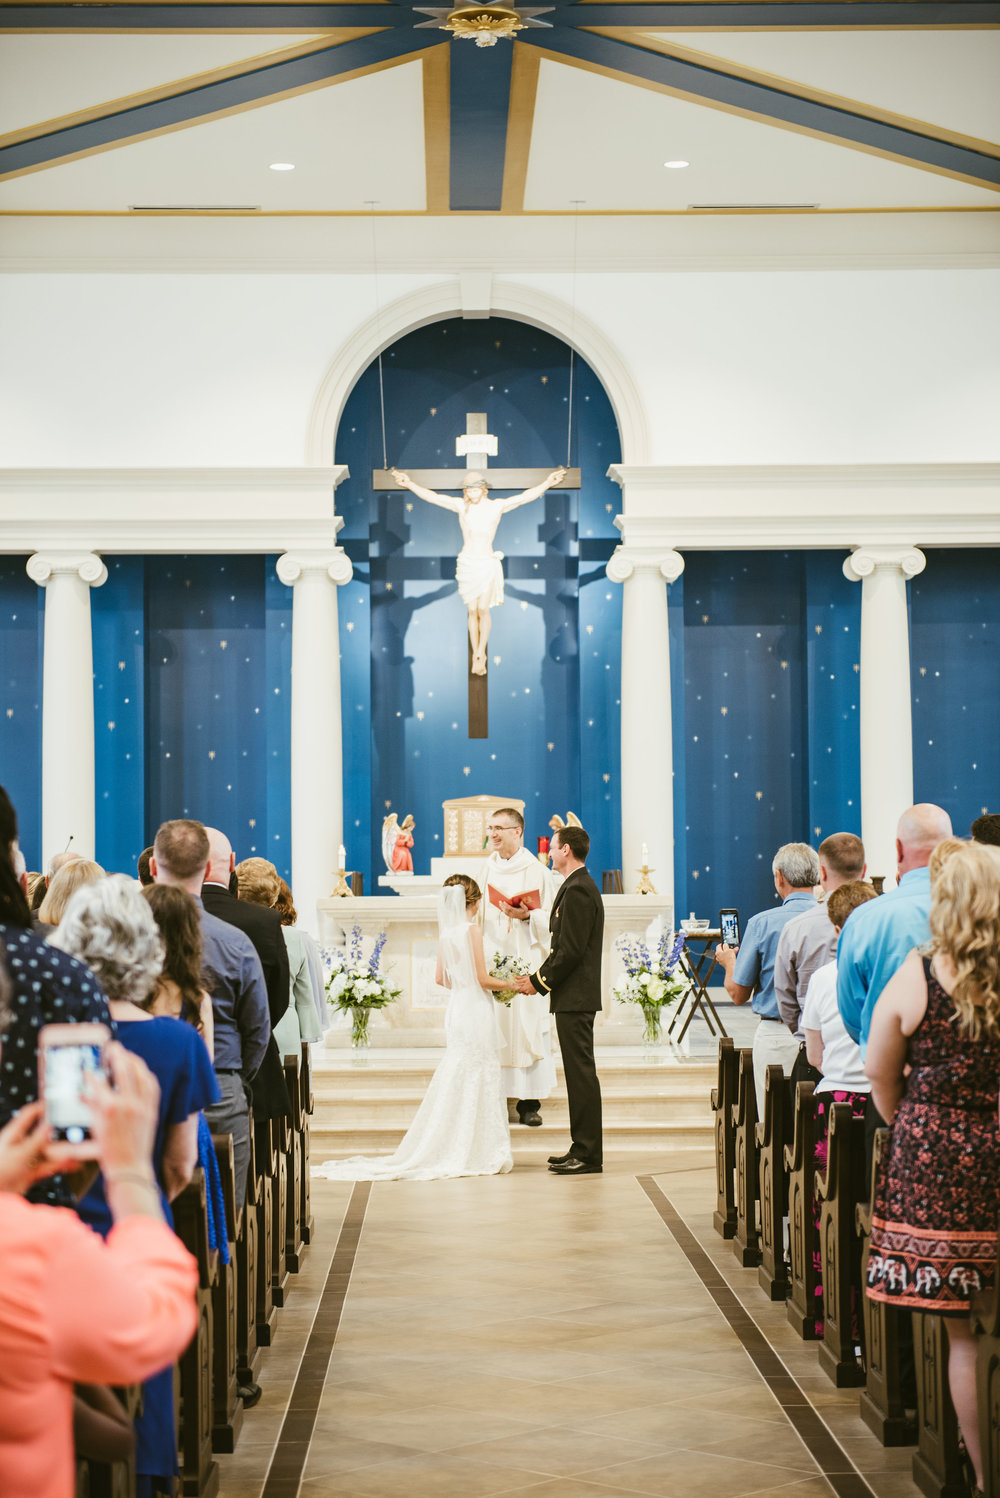 Raleigh Wedding - Raleigh Wedding Photographer - North Carolina Wedding Photographer - St. Luke's Wedding Raleigh